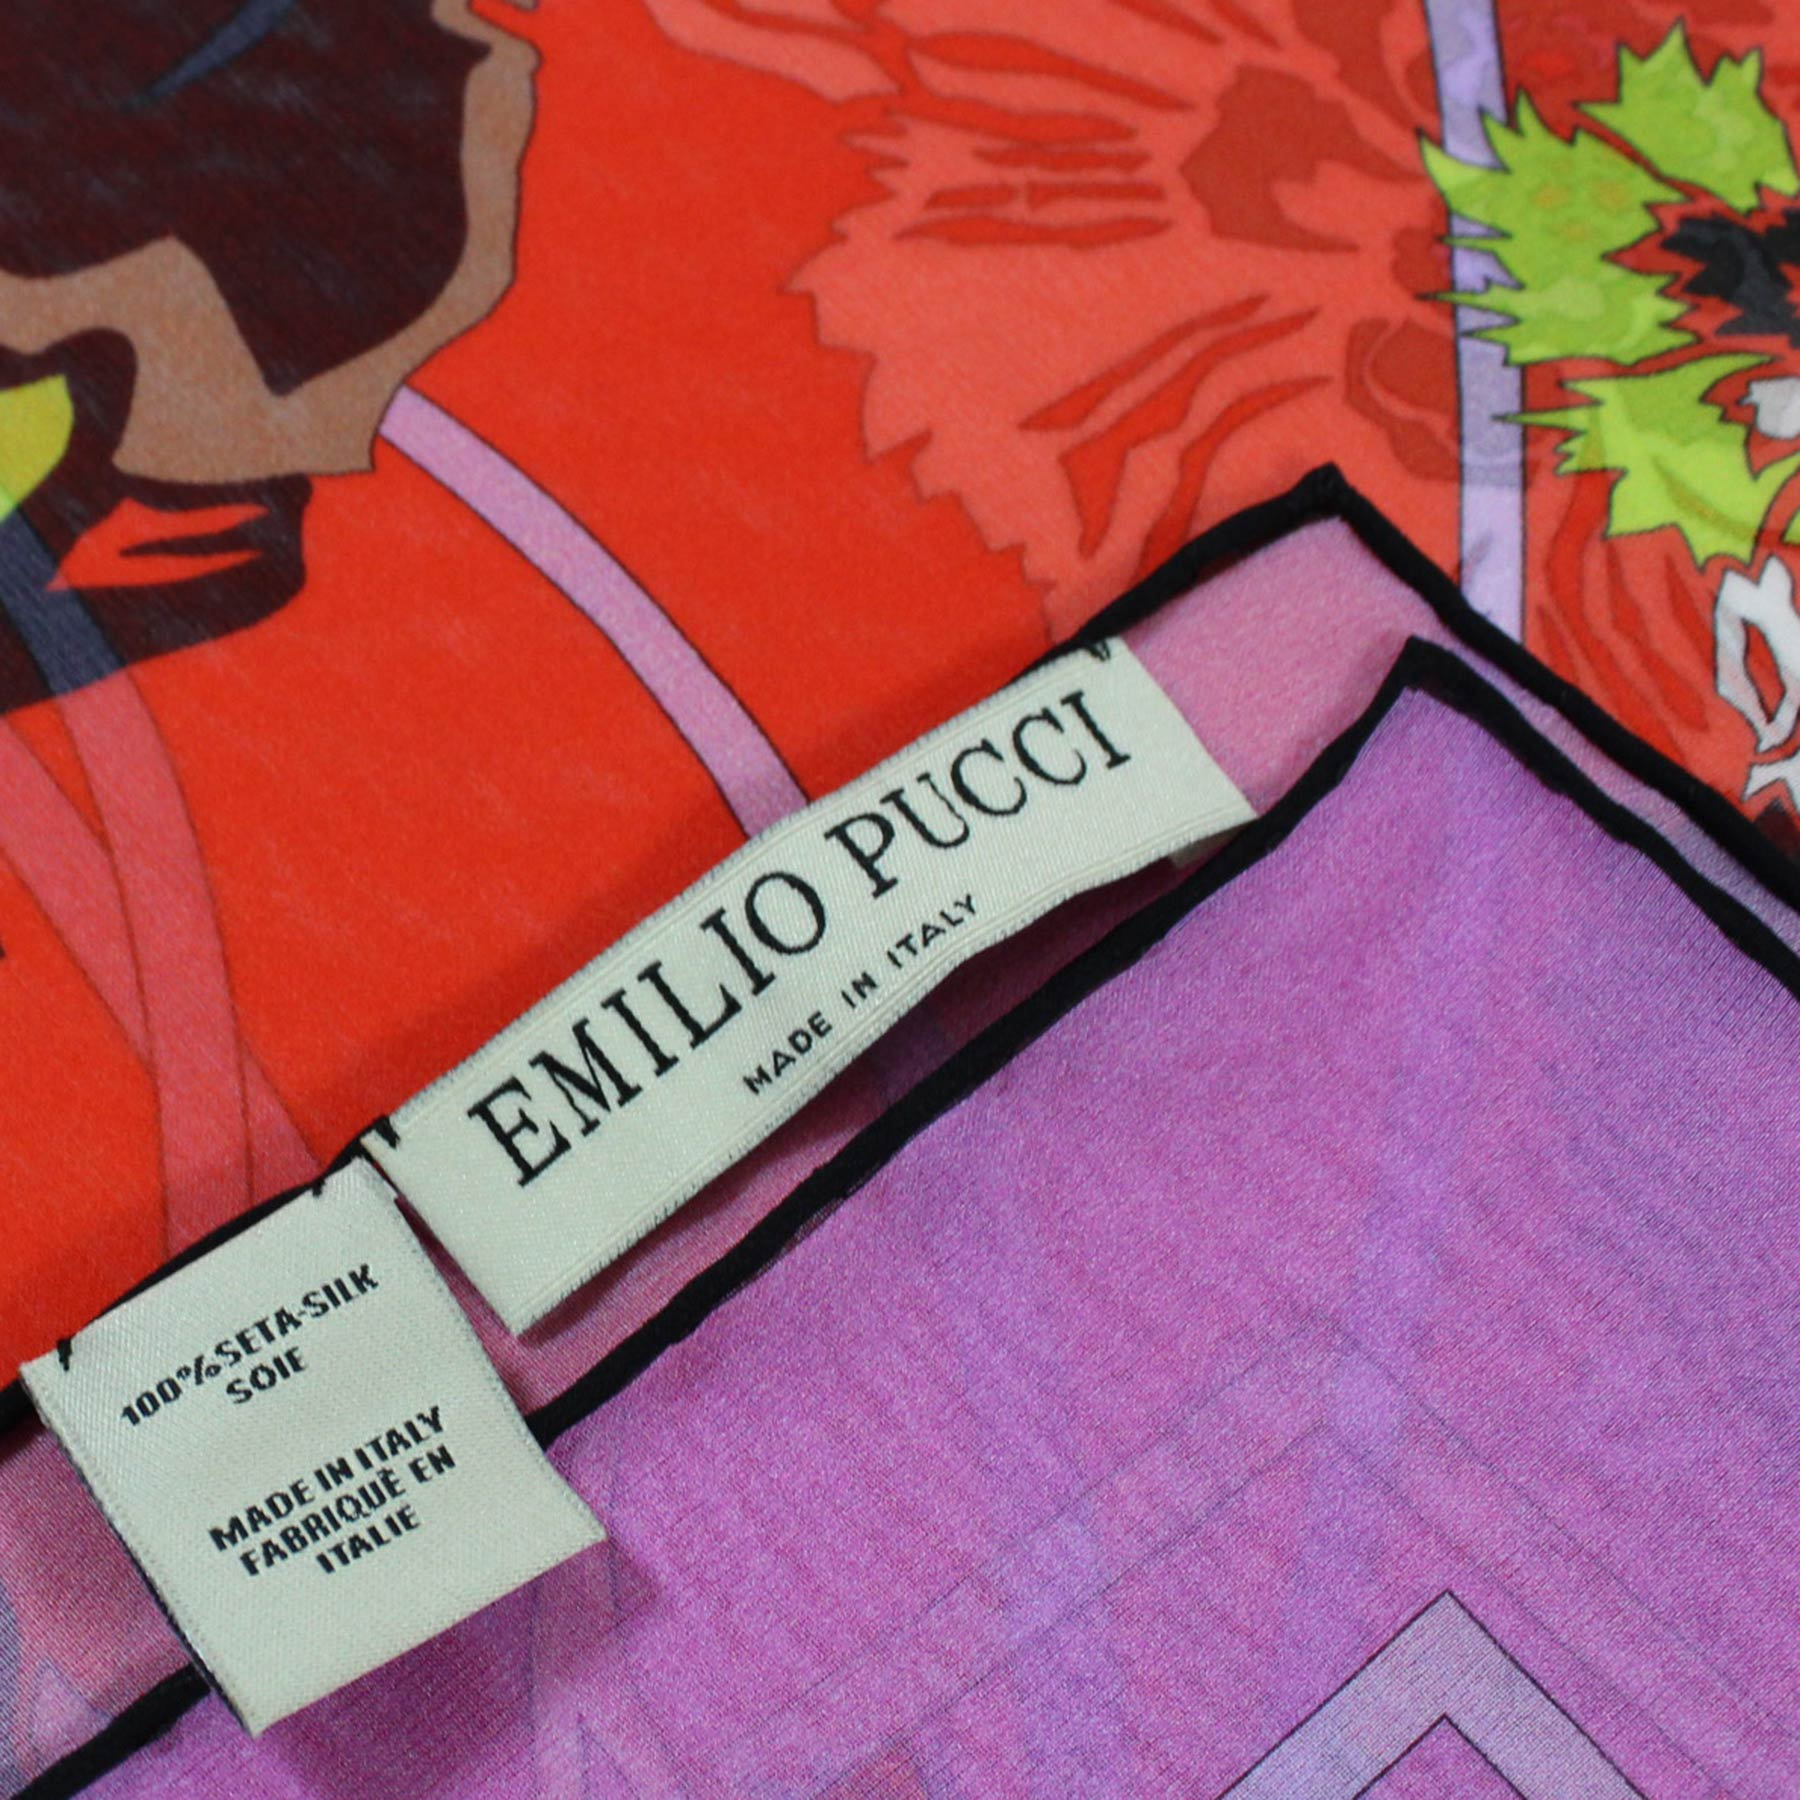 Emilio Pucci Scarf Red Pink Floral - Chiffon Silk Shawl BLACK FRIDAY SALE